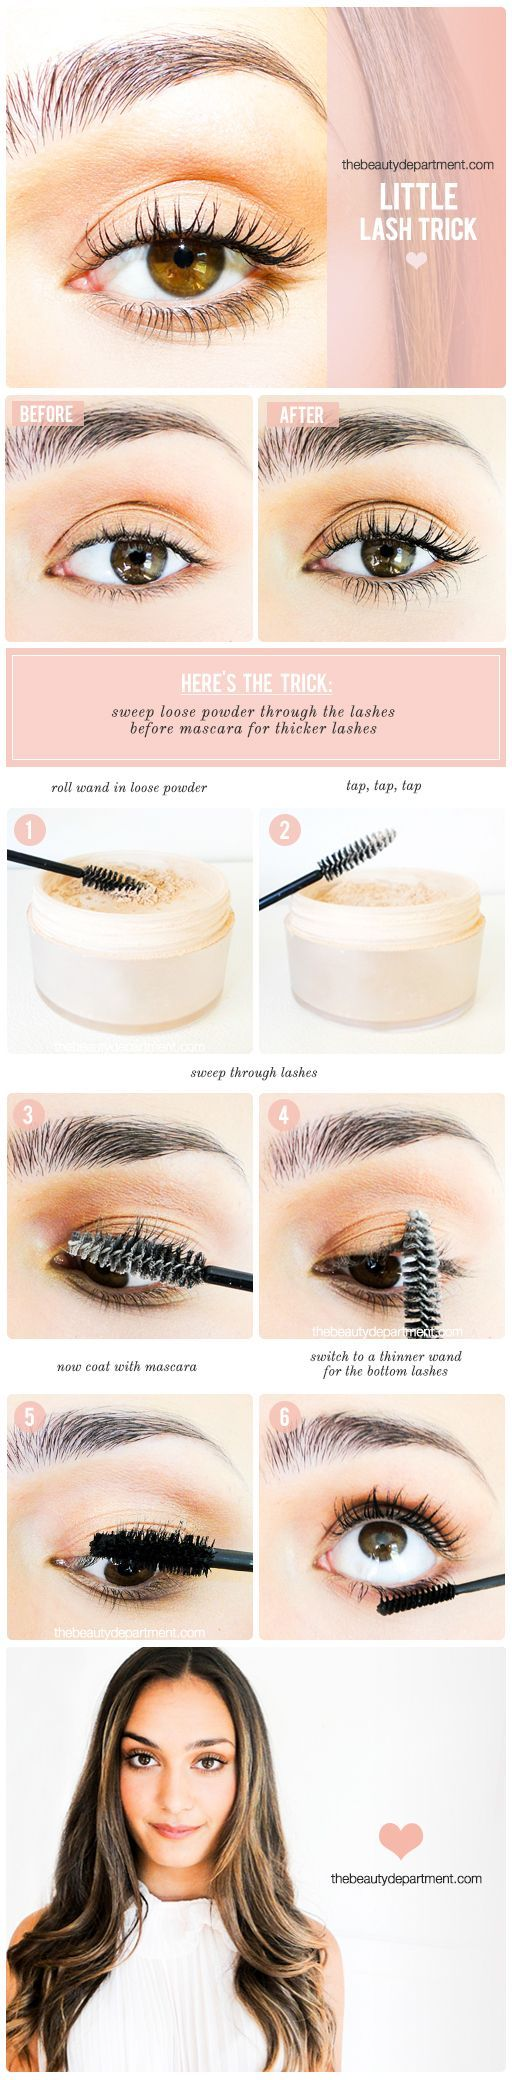 How to get thicker lashes! #eye #lashes #makeup